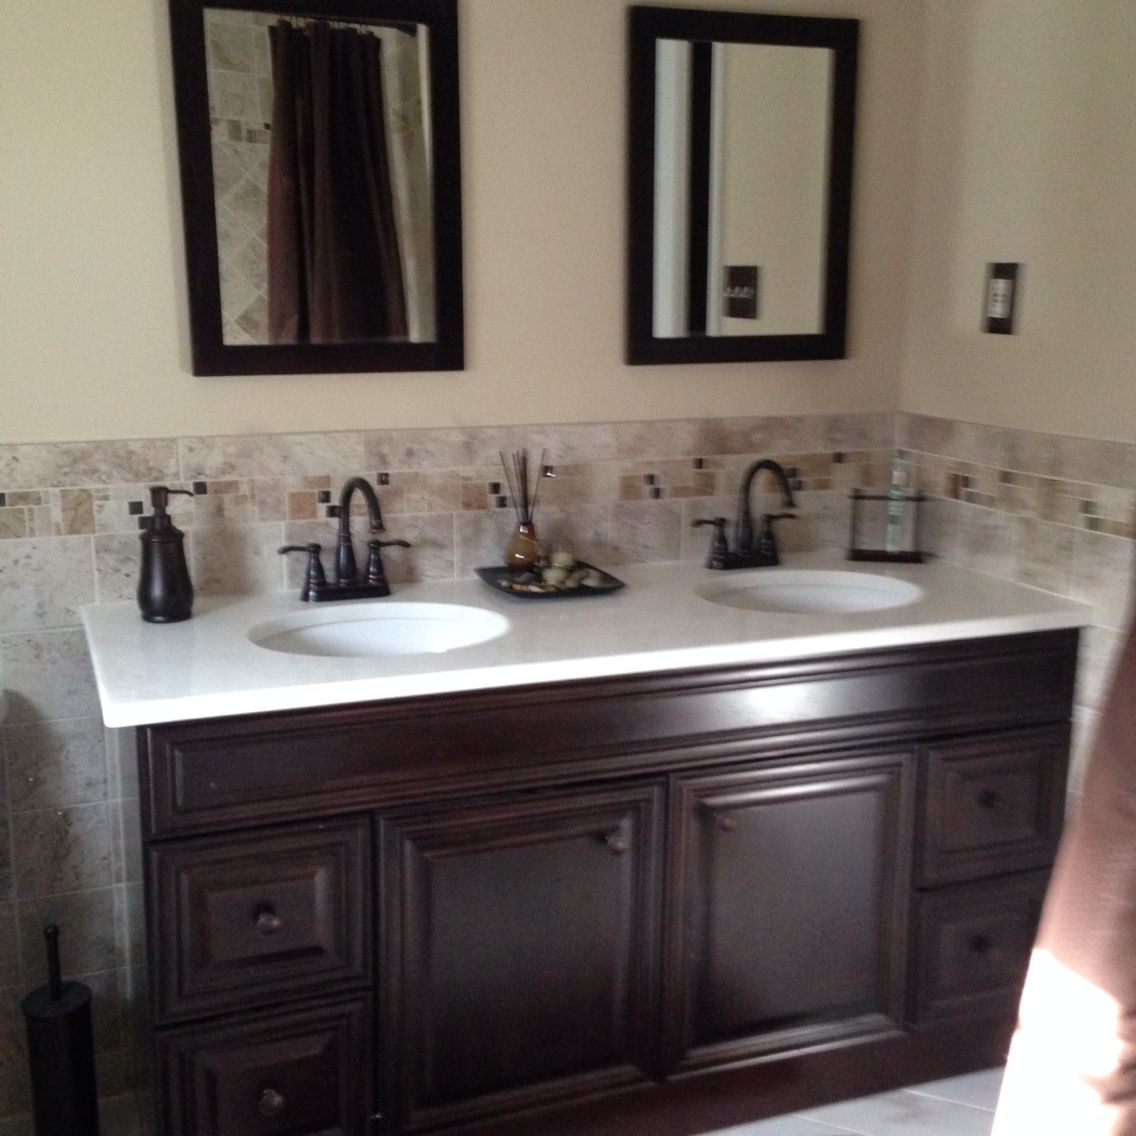 Tan Bathroom: Remodeled Bathroom. Manchester Tan Paint On Walls. Cabinet